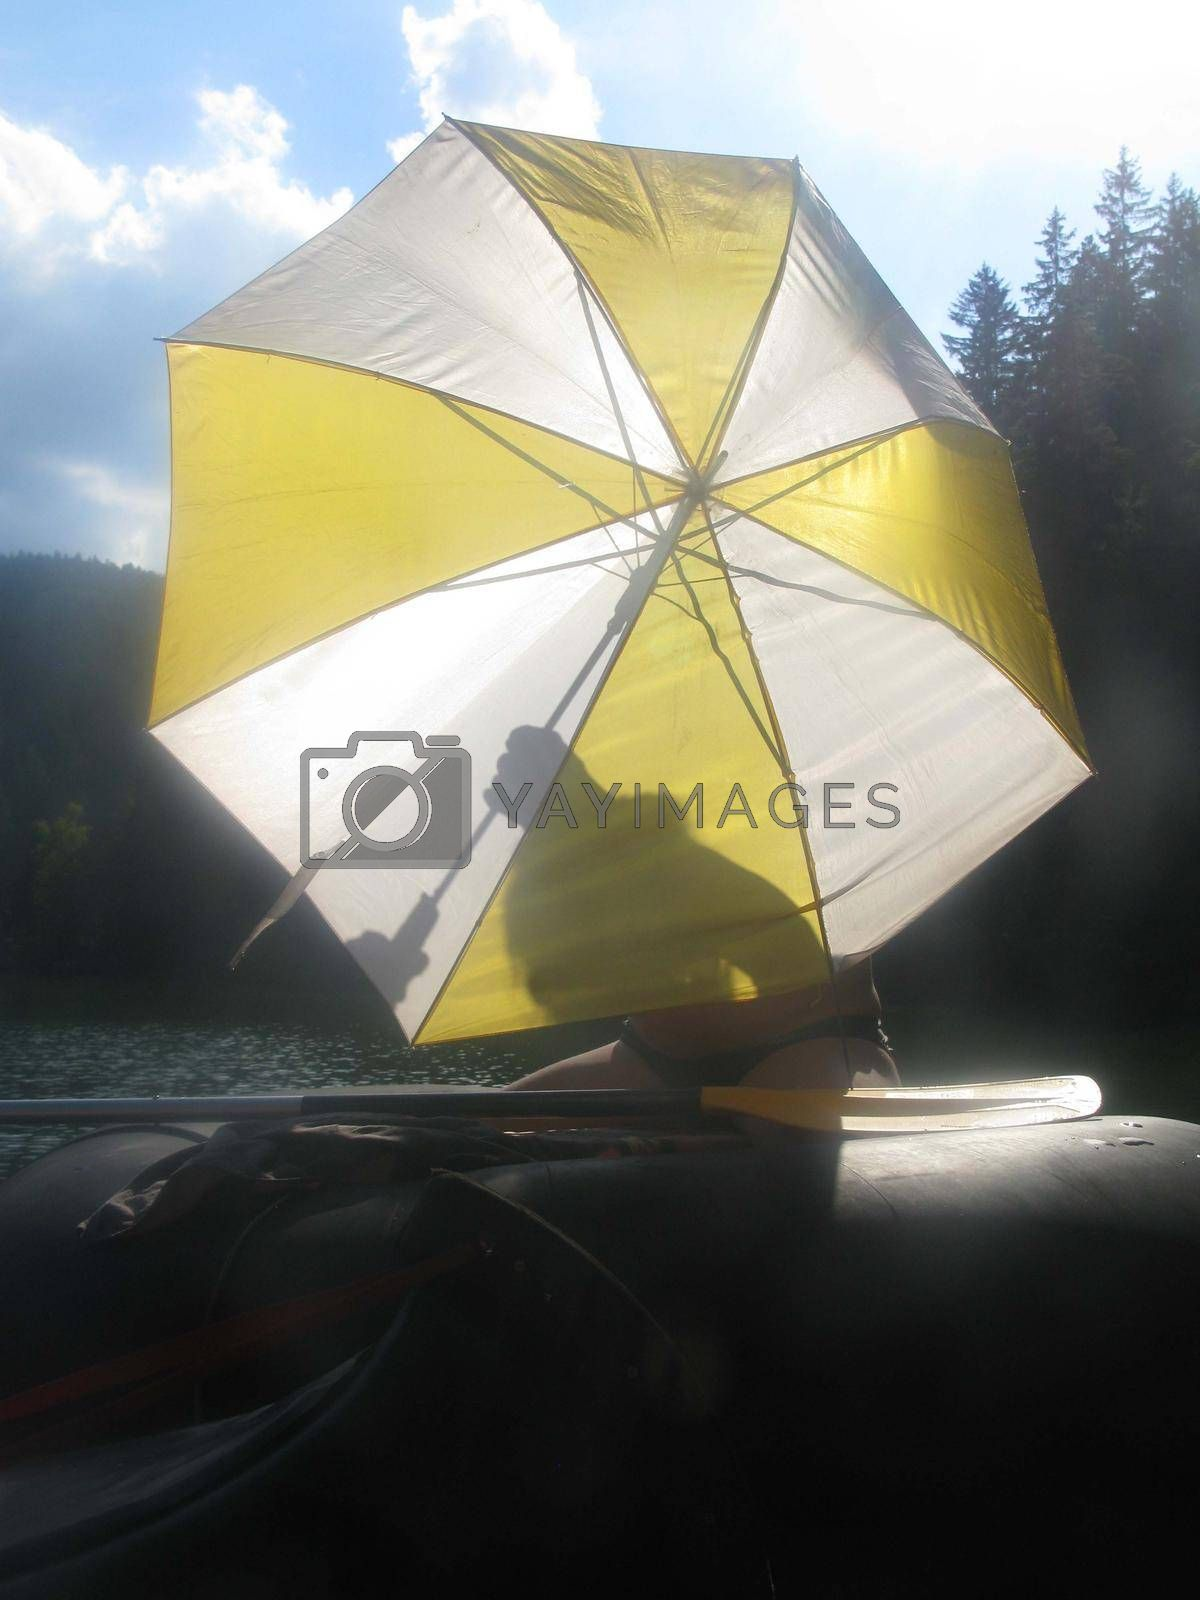 a sunshade or parasol in summer as a sun protection